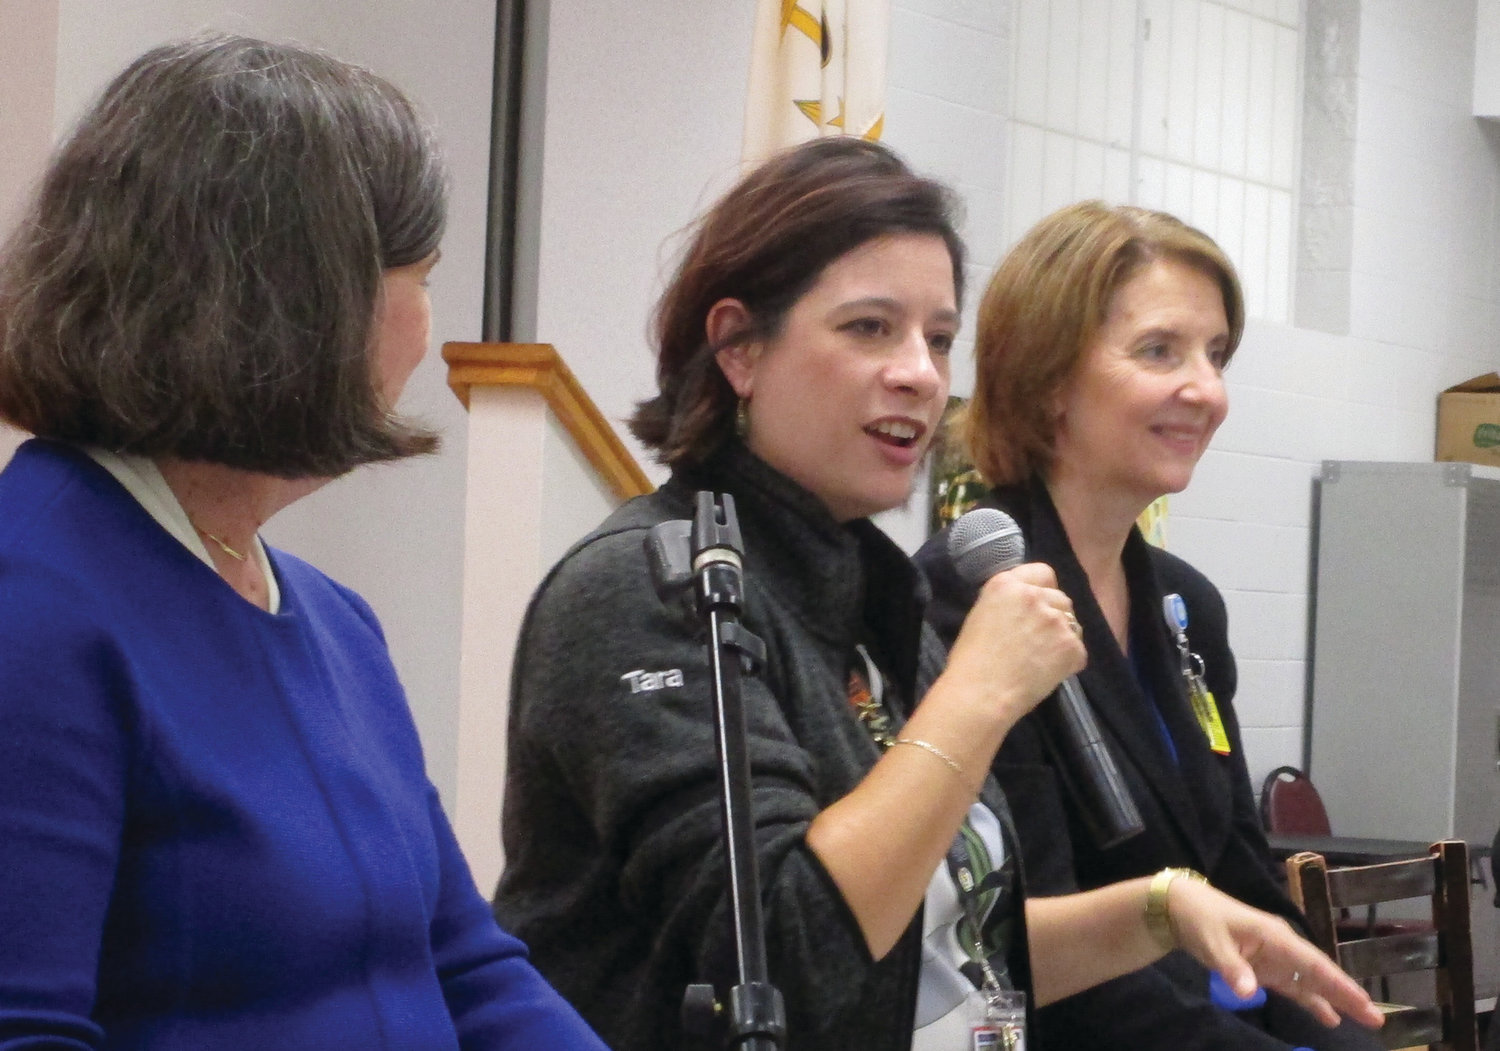 MESSAGE OF HOPE: Tara Tang, outreach coordinator for Butler Hospital's Memory & Aging Program, speaks during last week's panel discussion at the Cranston Enrichment Center. Looking on are Catherine Taylor, left, and Terry Fogerty, right.